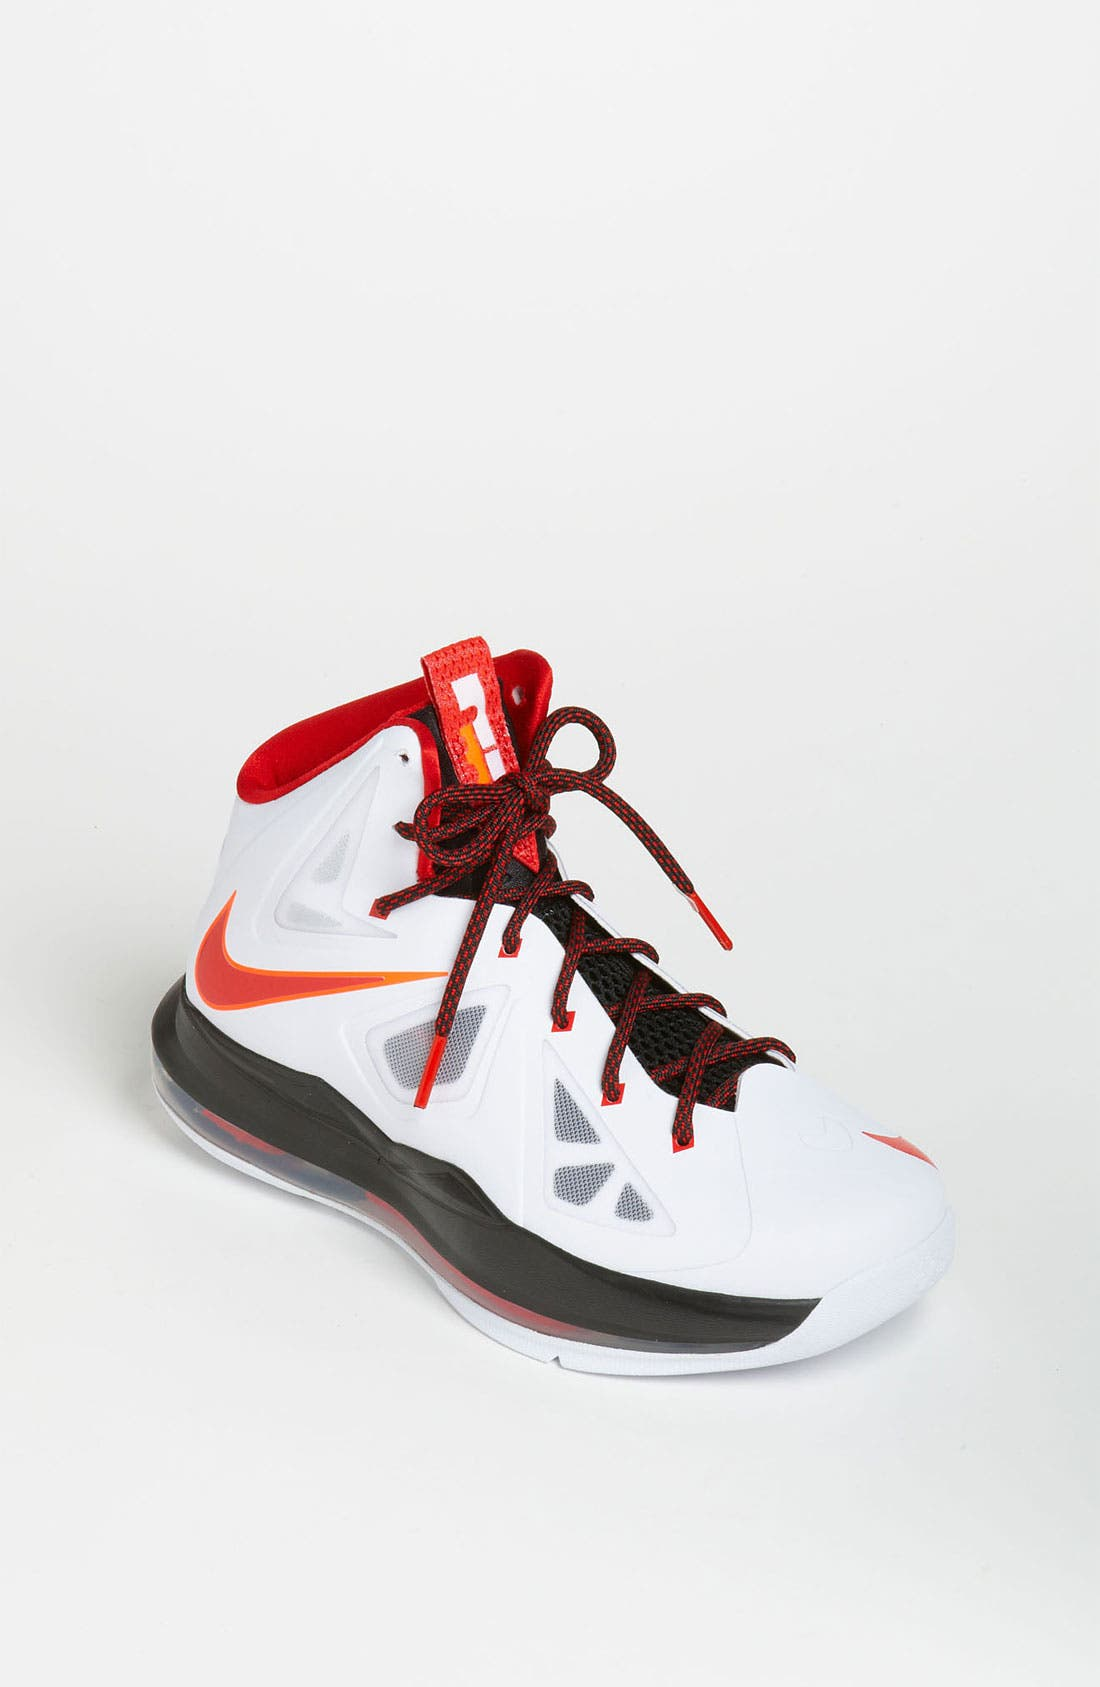 Alternate Image 1 Selected - Nike 'LeBron 10 Pressure' Basketball Shoe (Big Kid)